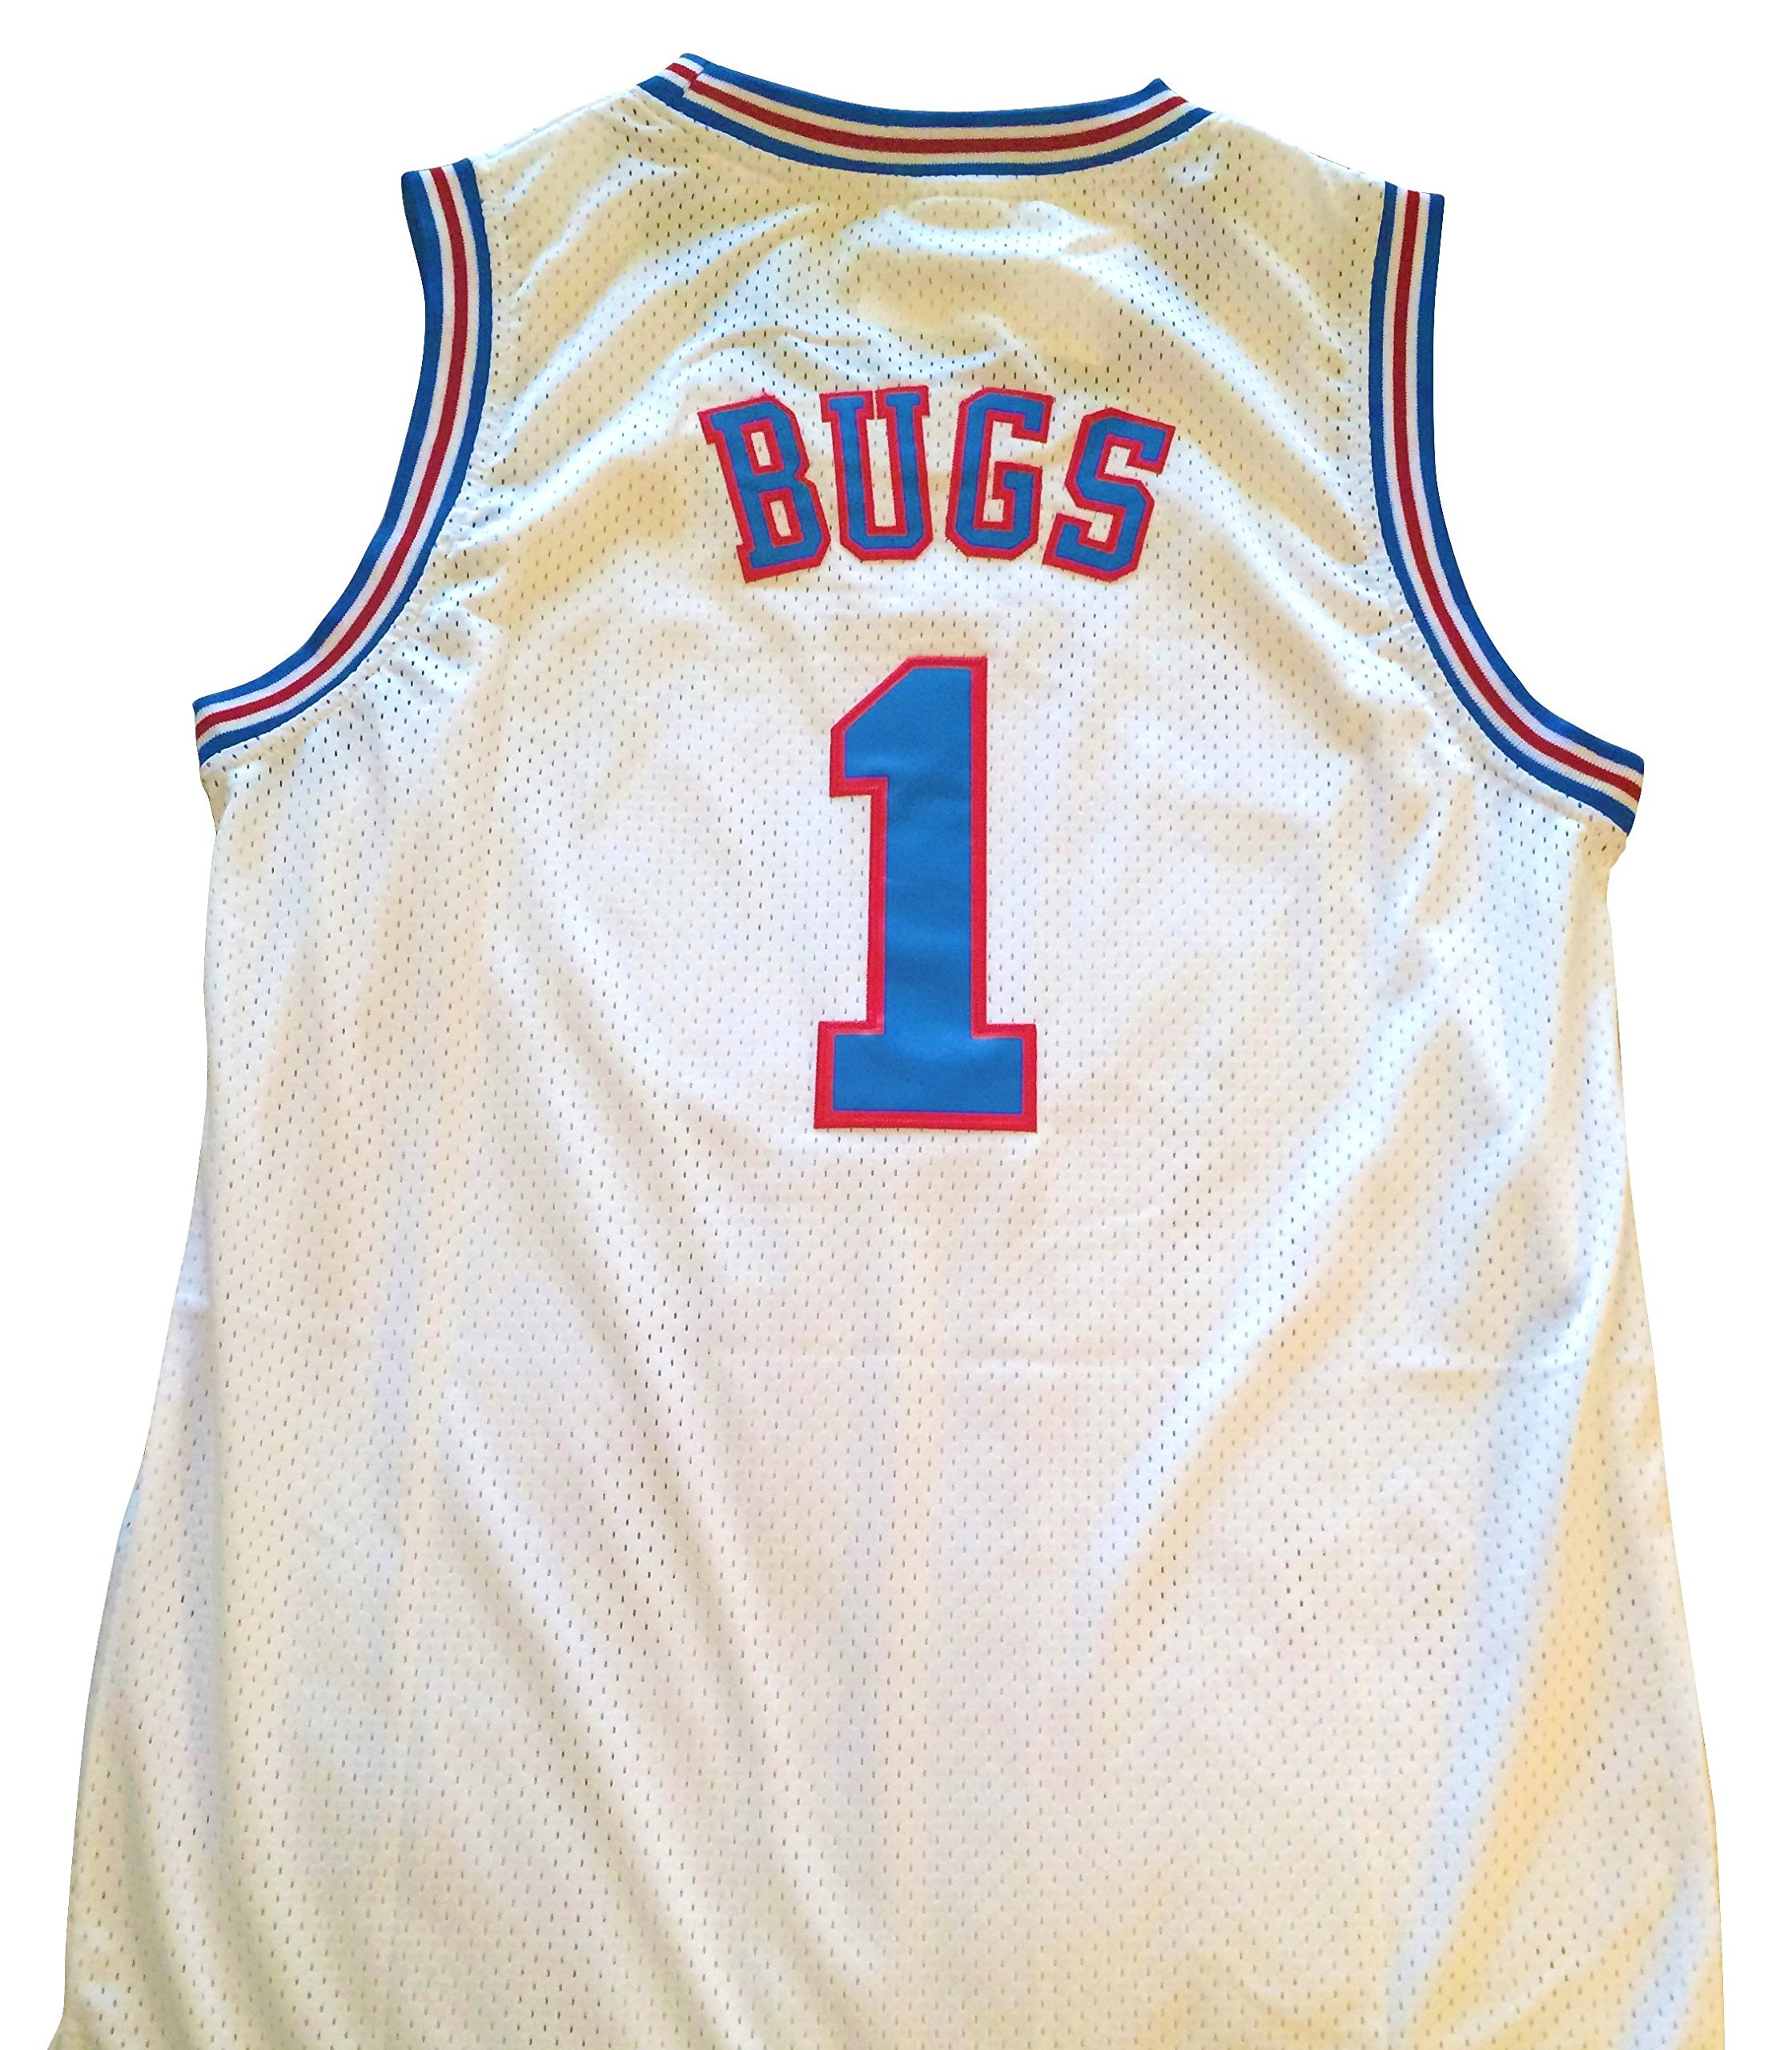 2fa6137a3d486 Get Quotations · Bugs Bunny Space Jam Jersey -  1 Tune Squad - White  (Medium)